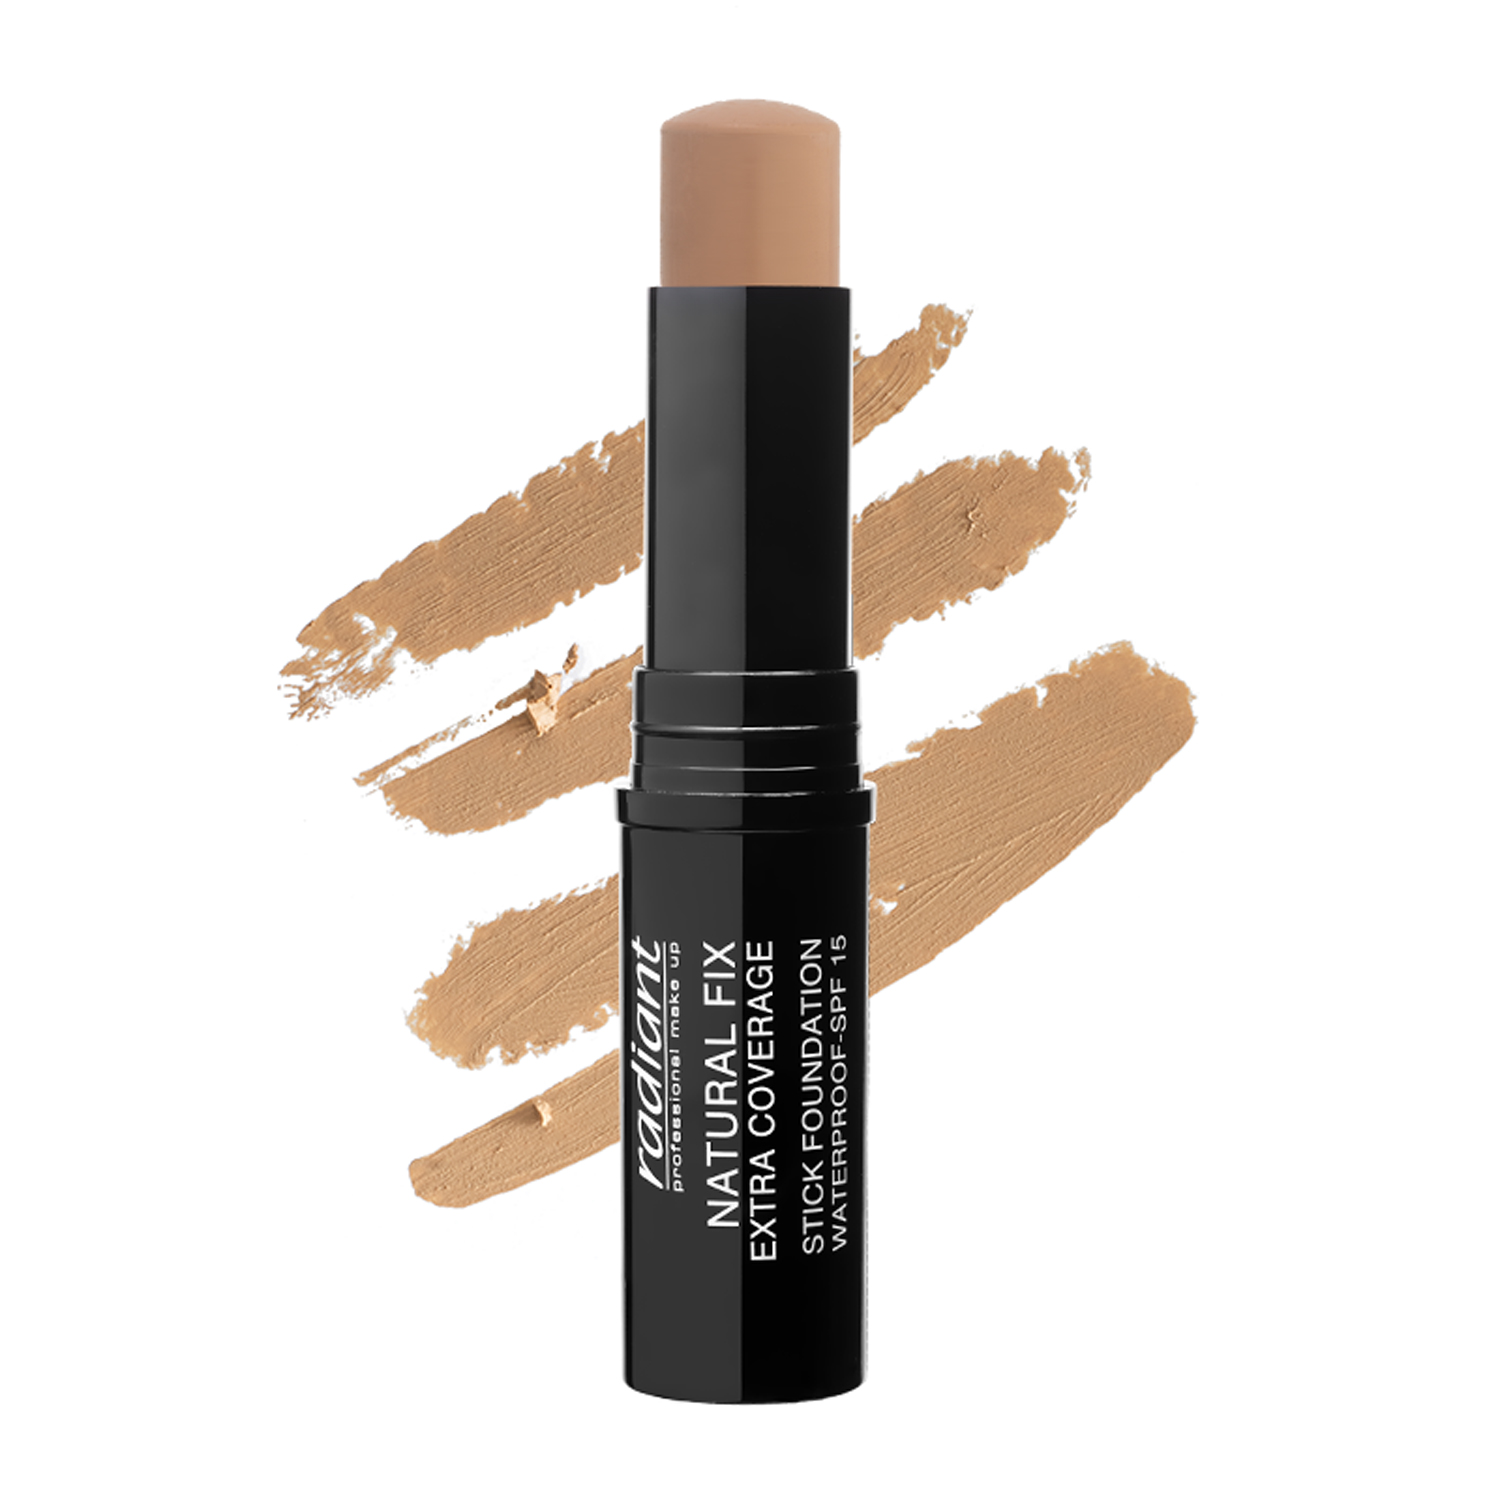 NATURAL FIX EXTRA COVERAGE STICK FOUNDATION  WATERPROOF SPF 15 (02 GRANOLA)